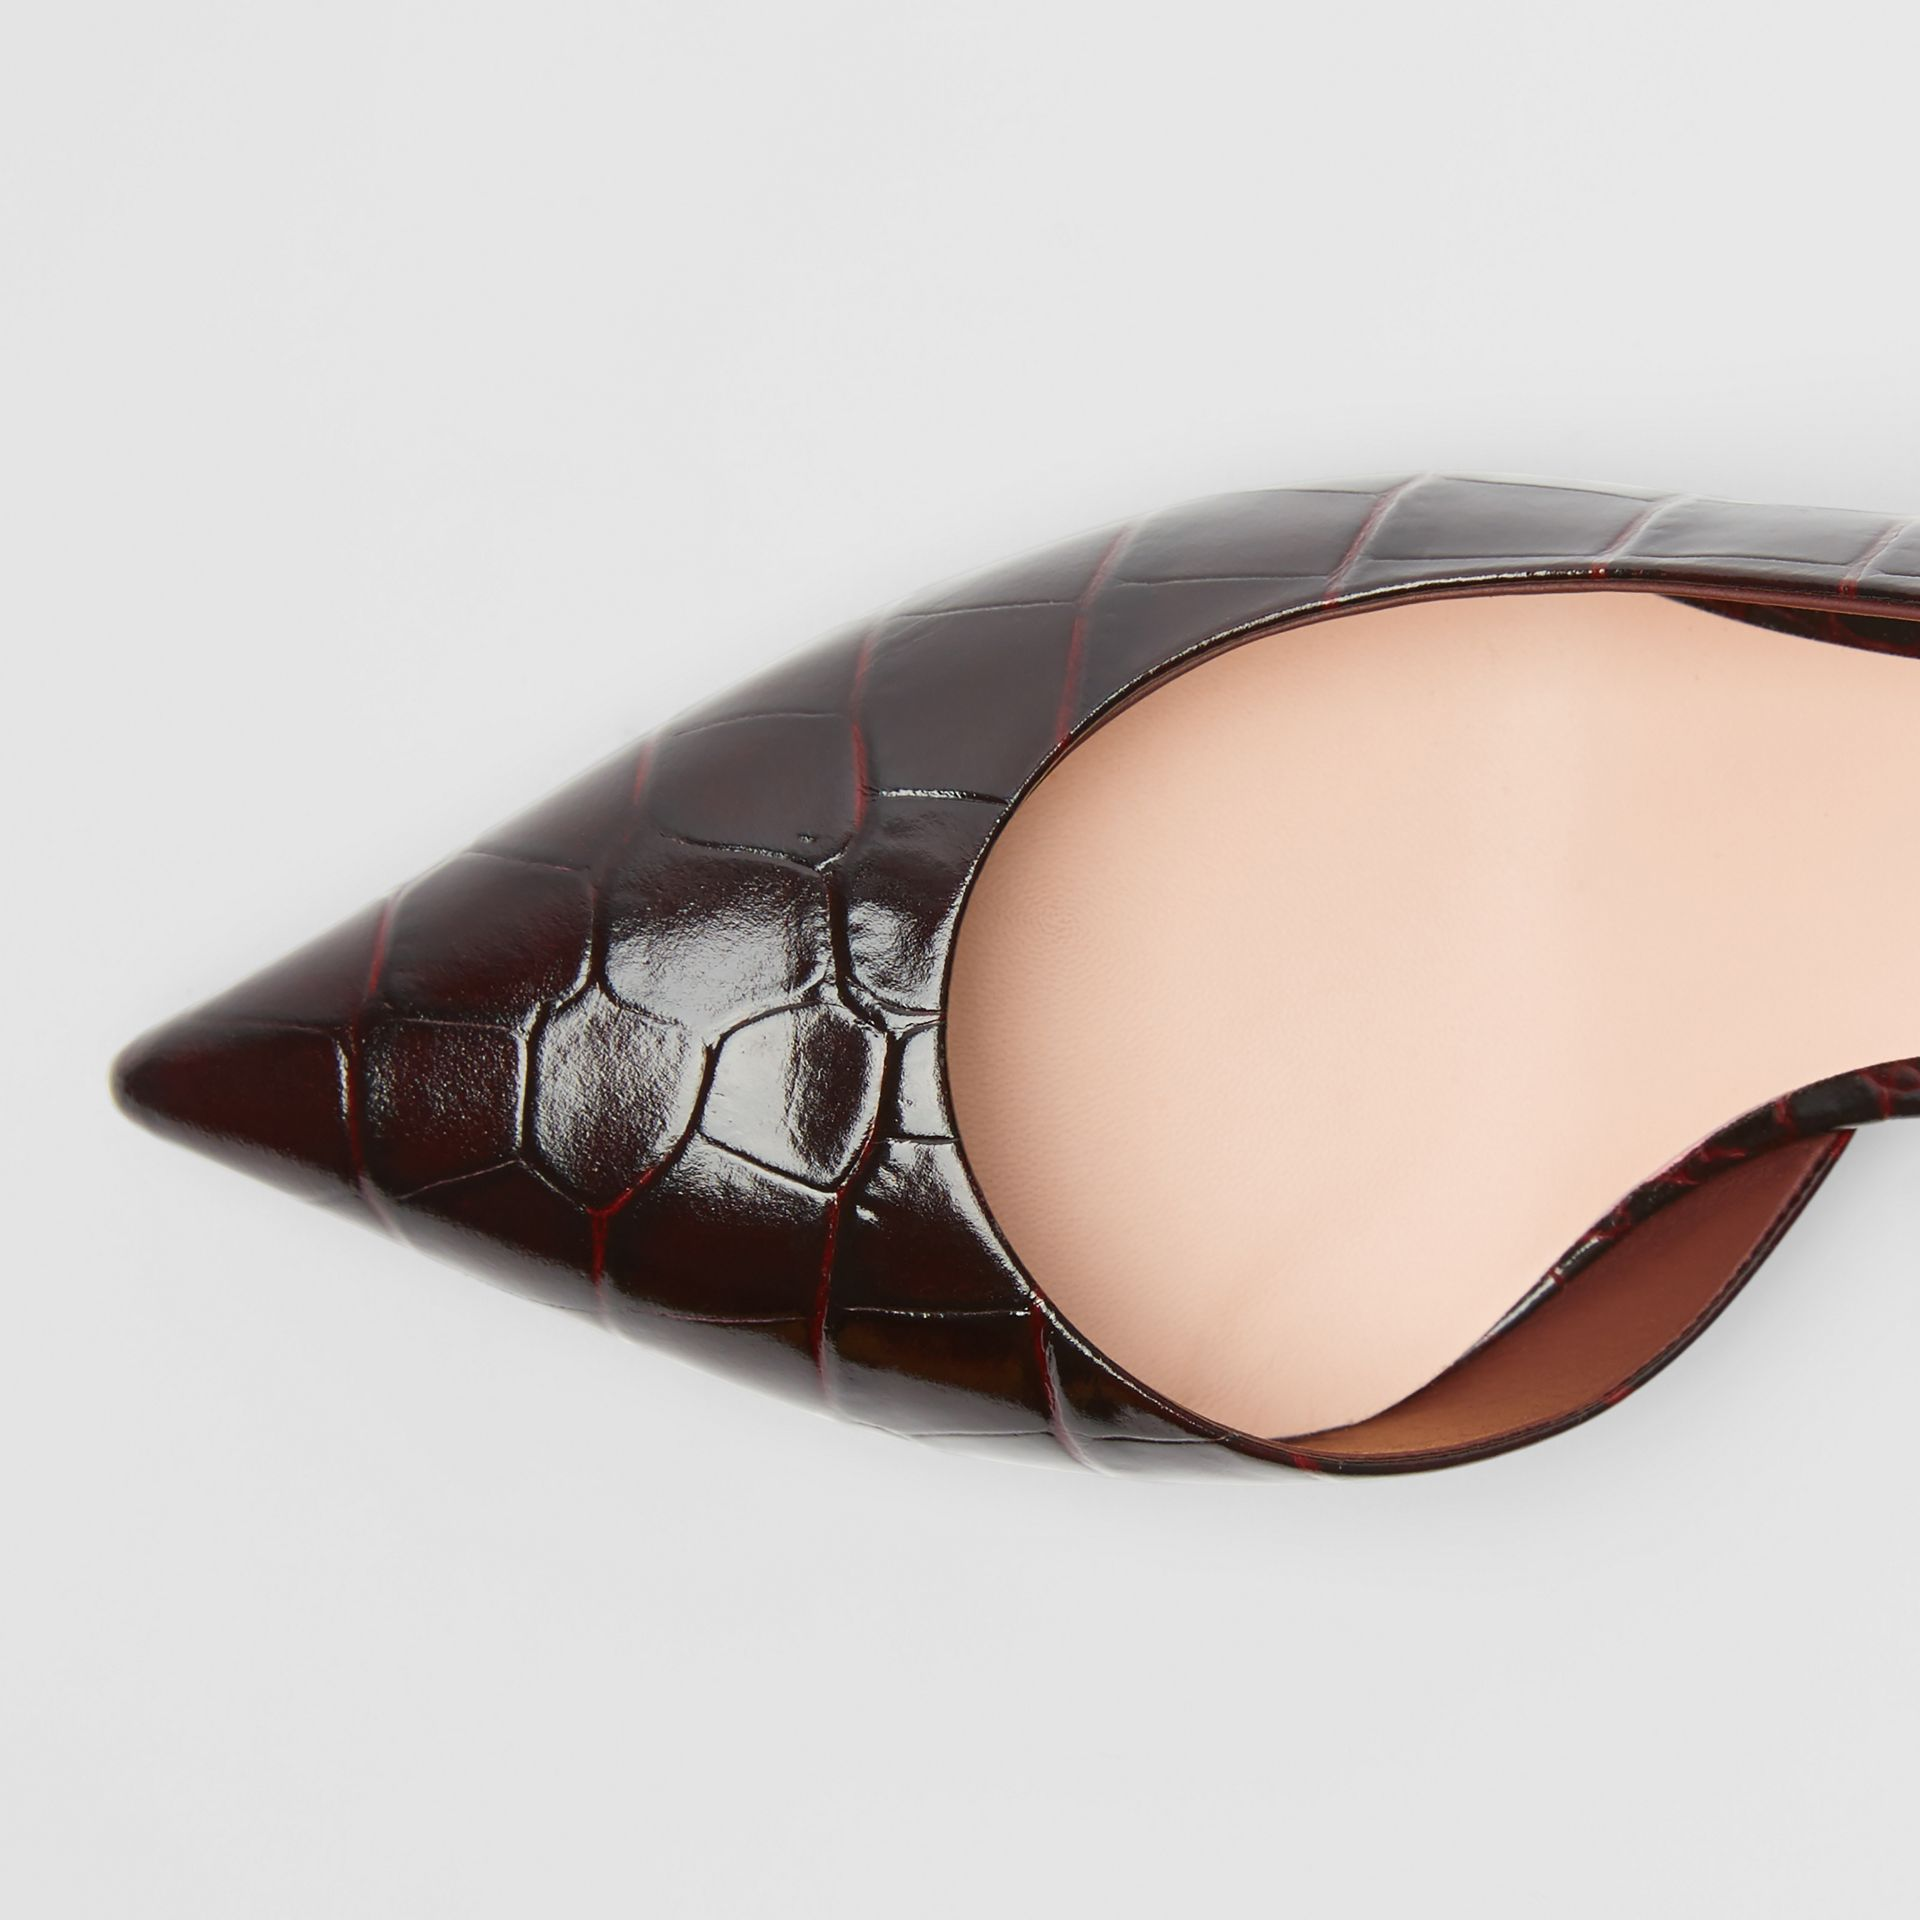 Embossed Leather Slingback Pumps in Bordeaux - Women | Burberry United Kingdom - gallery image 1